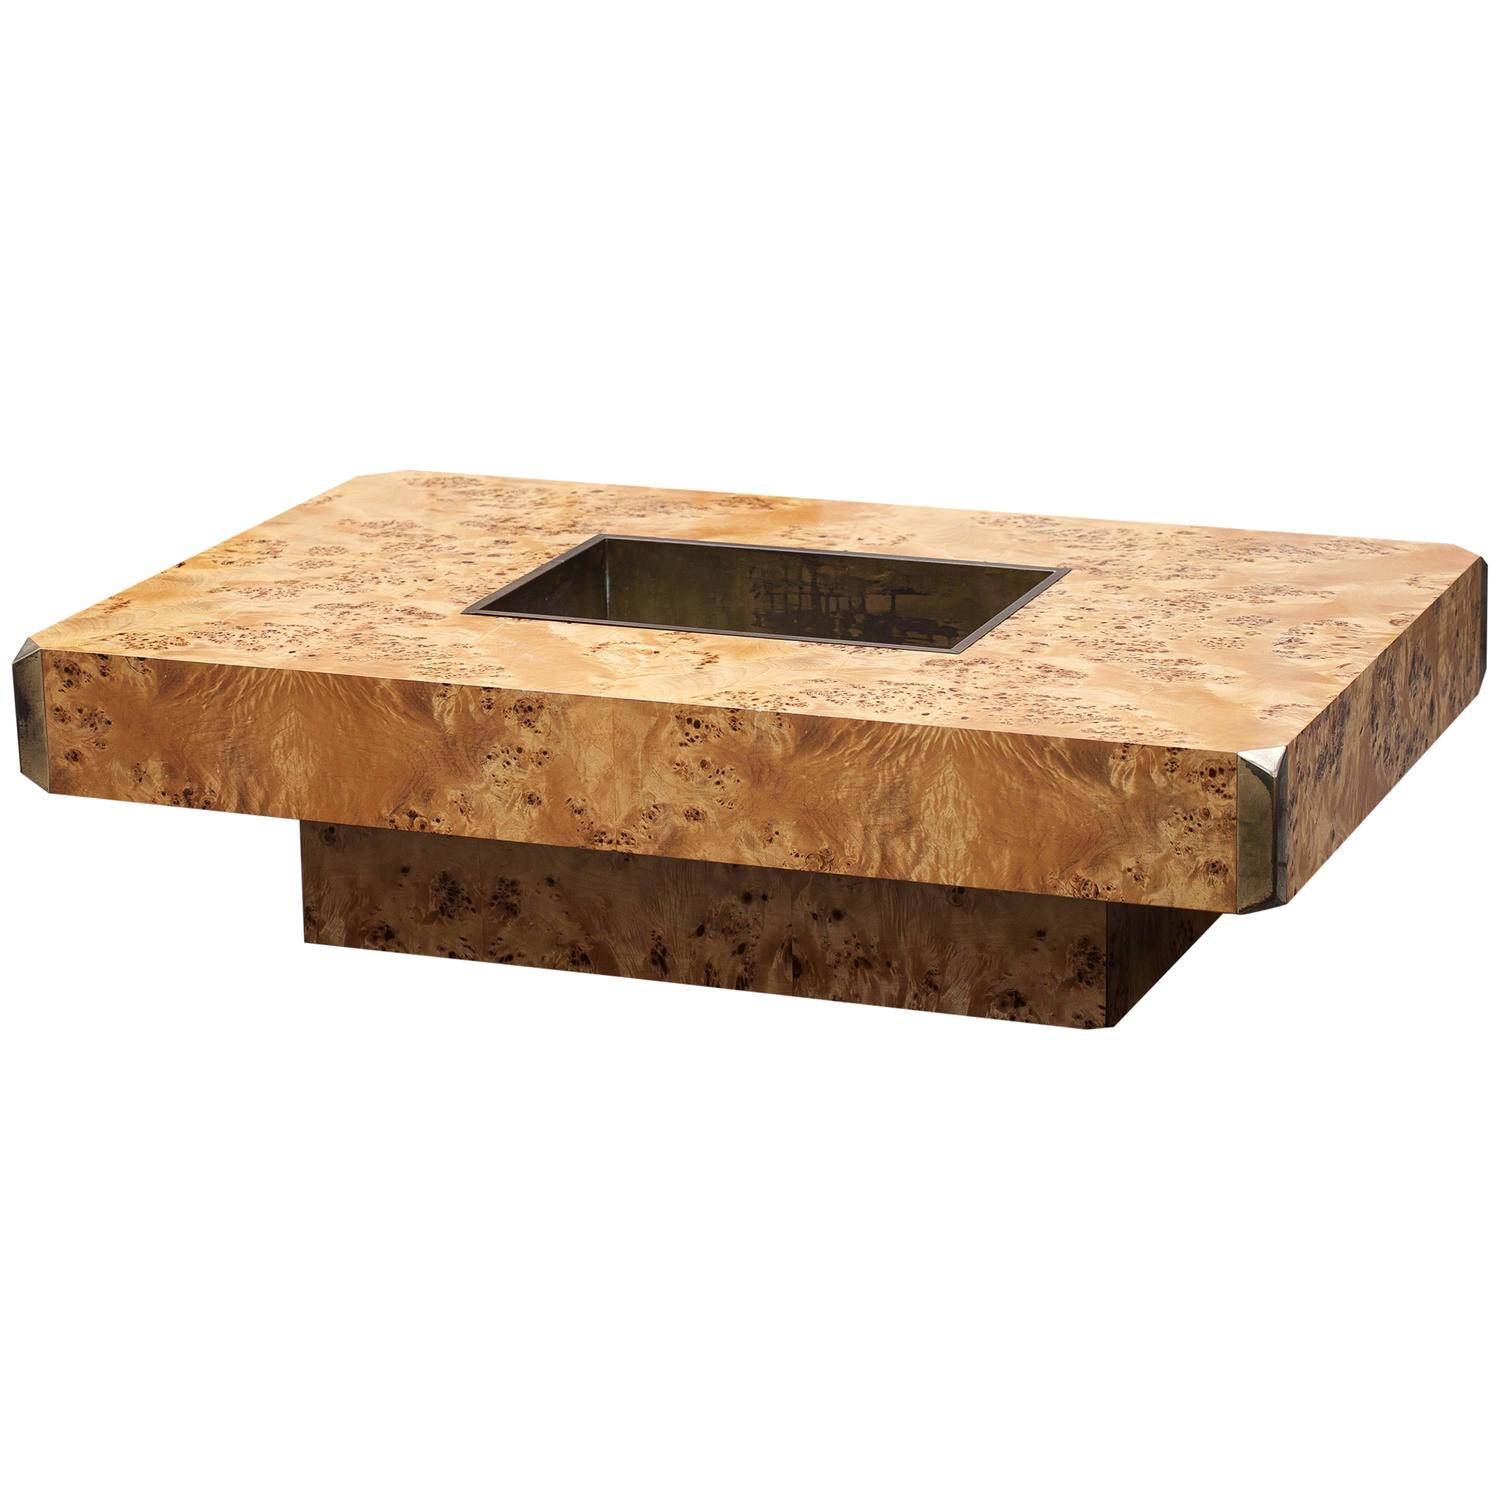 Willy rizzo coffee table alveo burl wood 1973 at 1stdibs for Table willy rizzo